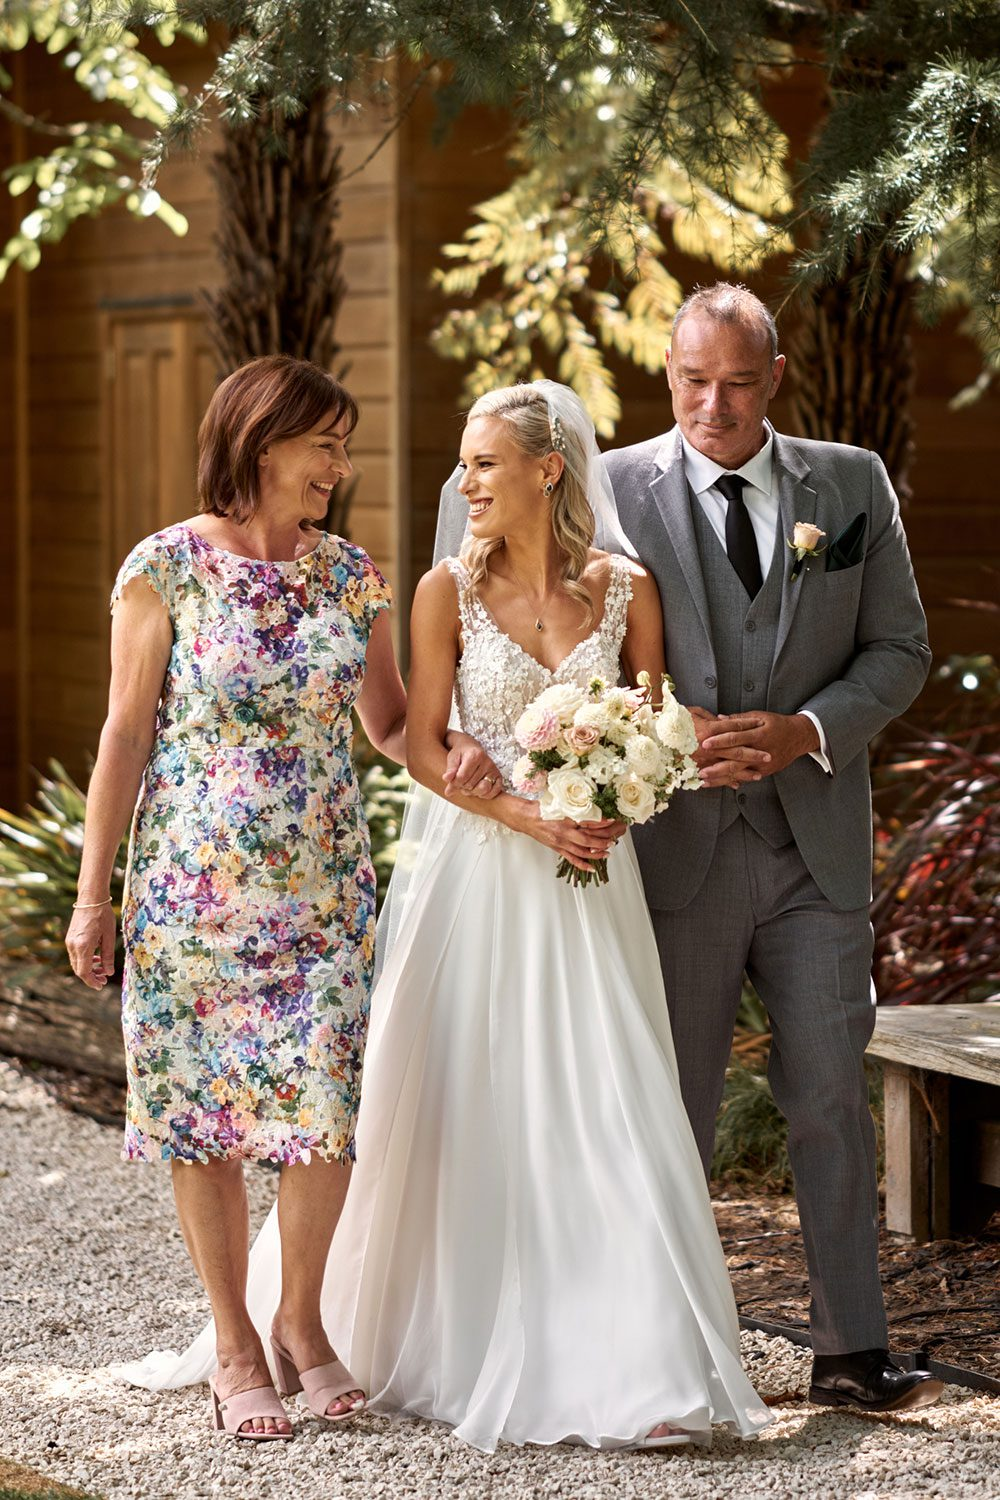 Bride wearing bespoke gown made of silk chiffon with delicate flower lace bodice by Vinka bridal designer Auckland - walking with family